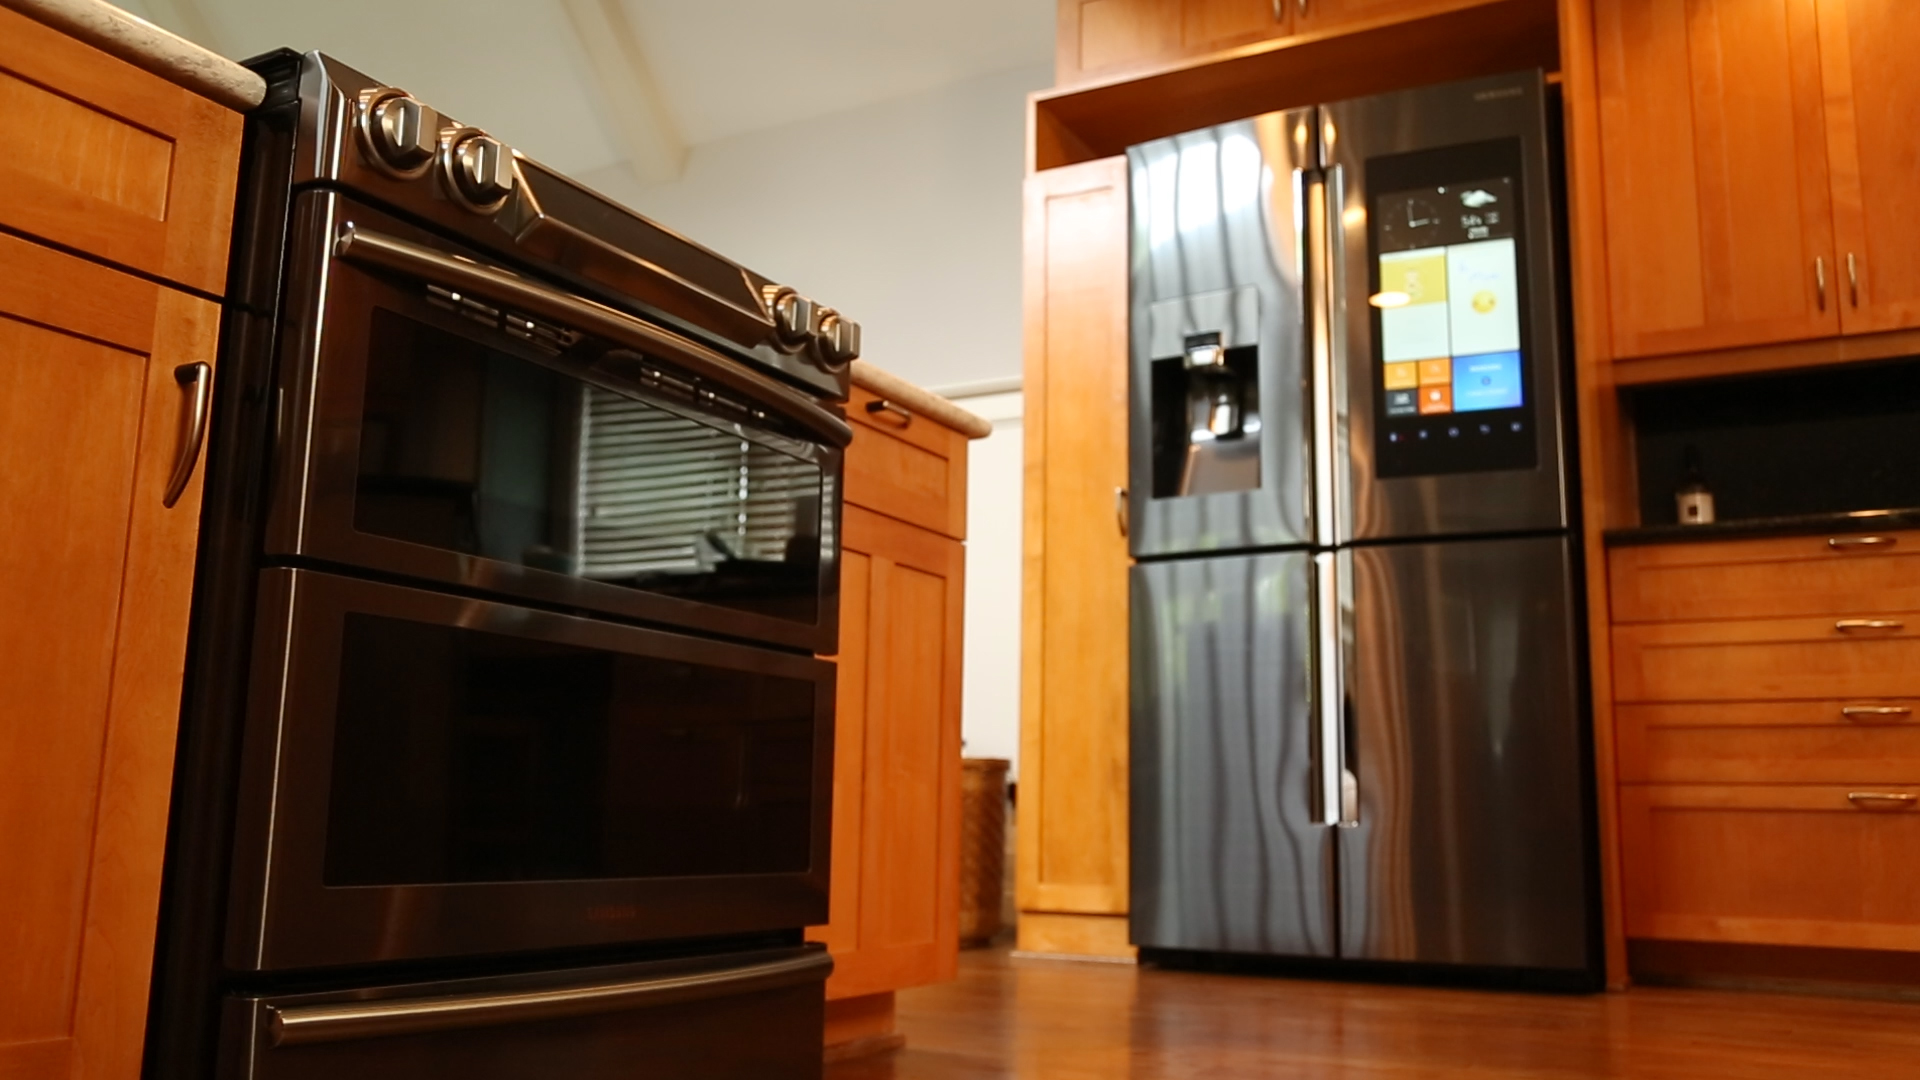 Video: The kitchen's never been so smart (or so expensive)